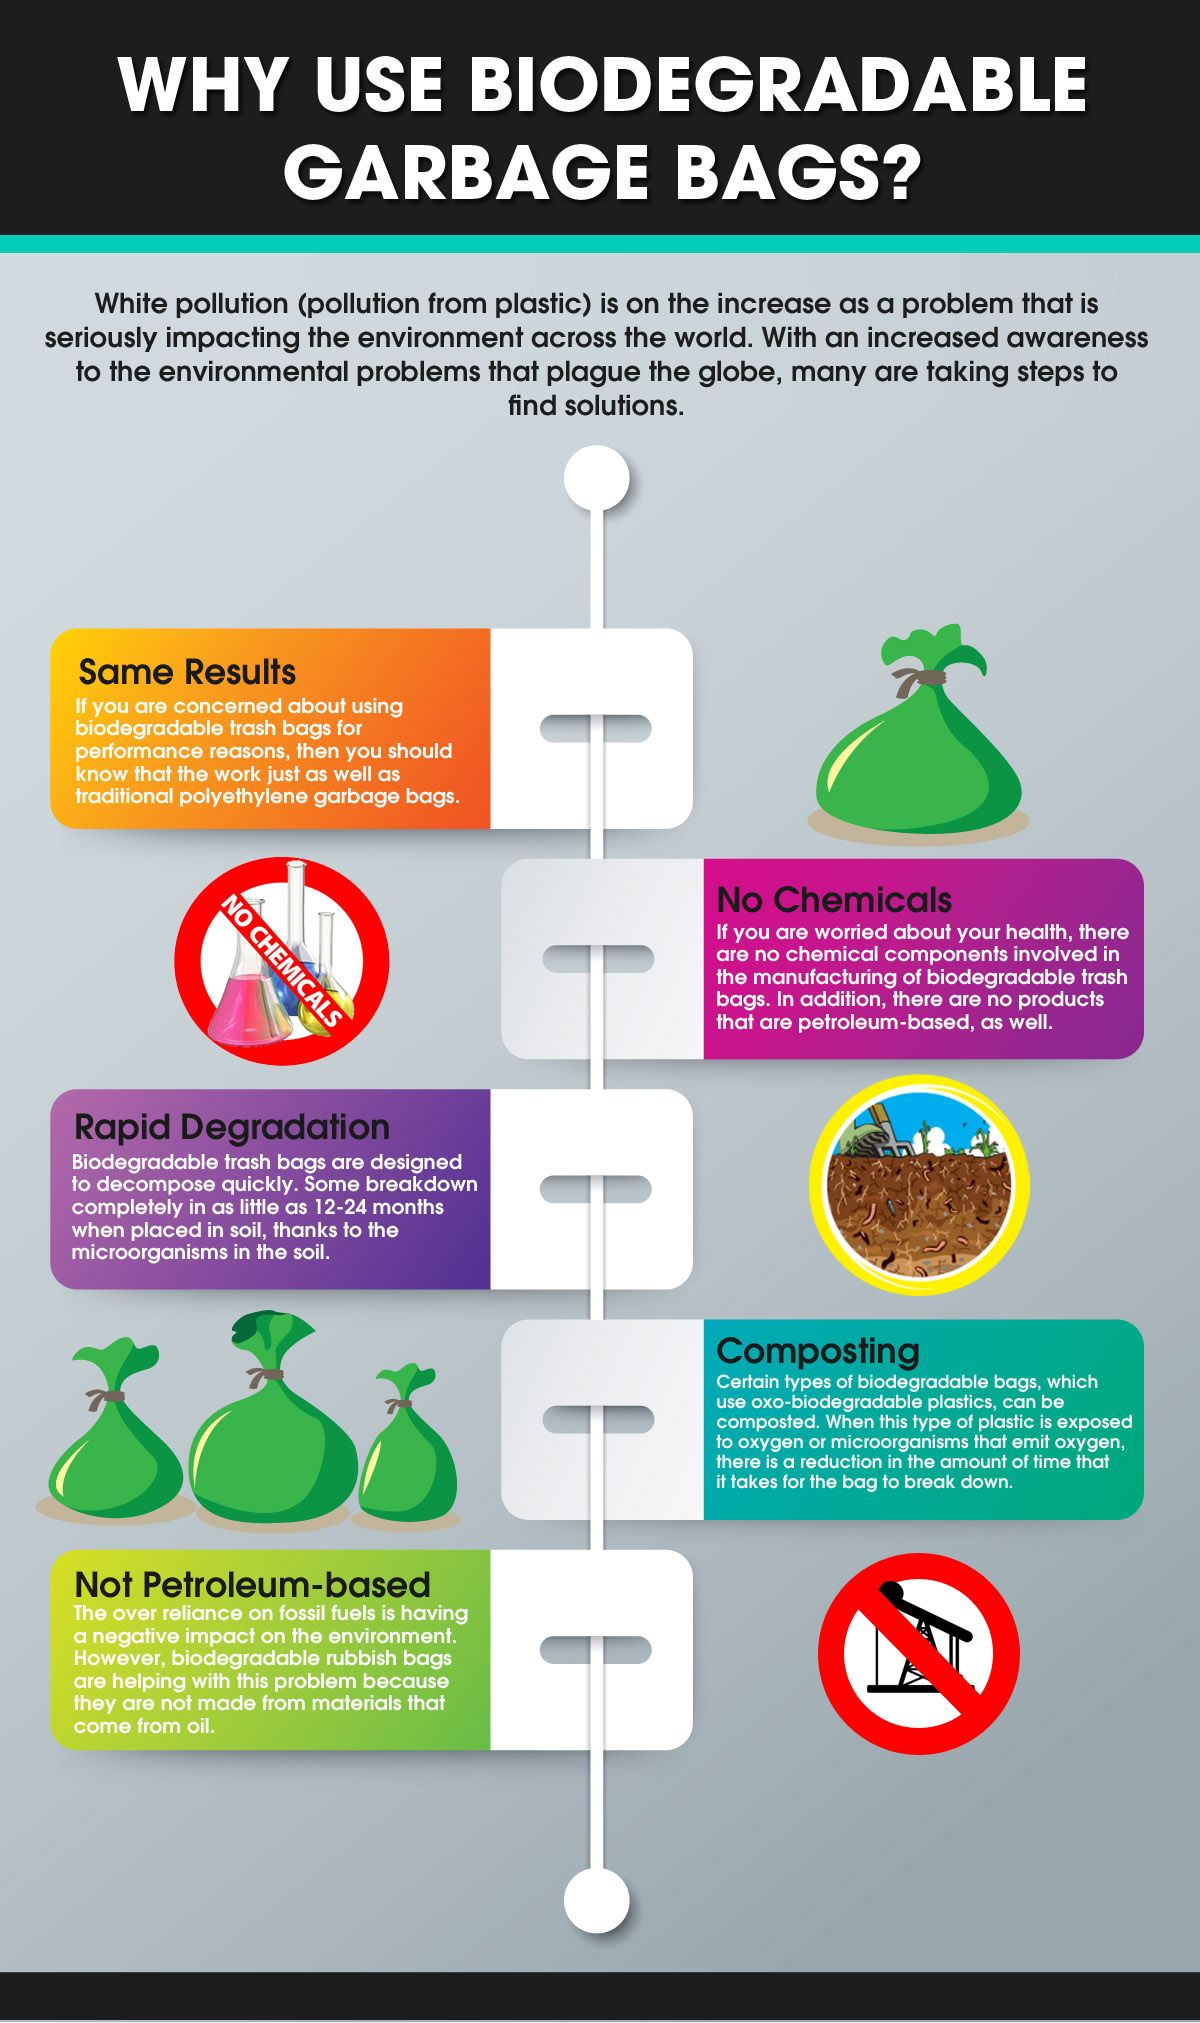 Why-Use-Biodegradable-Garbage-Bags-infographic-plaza